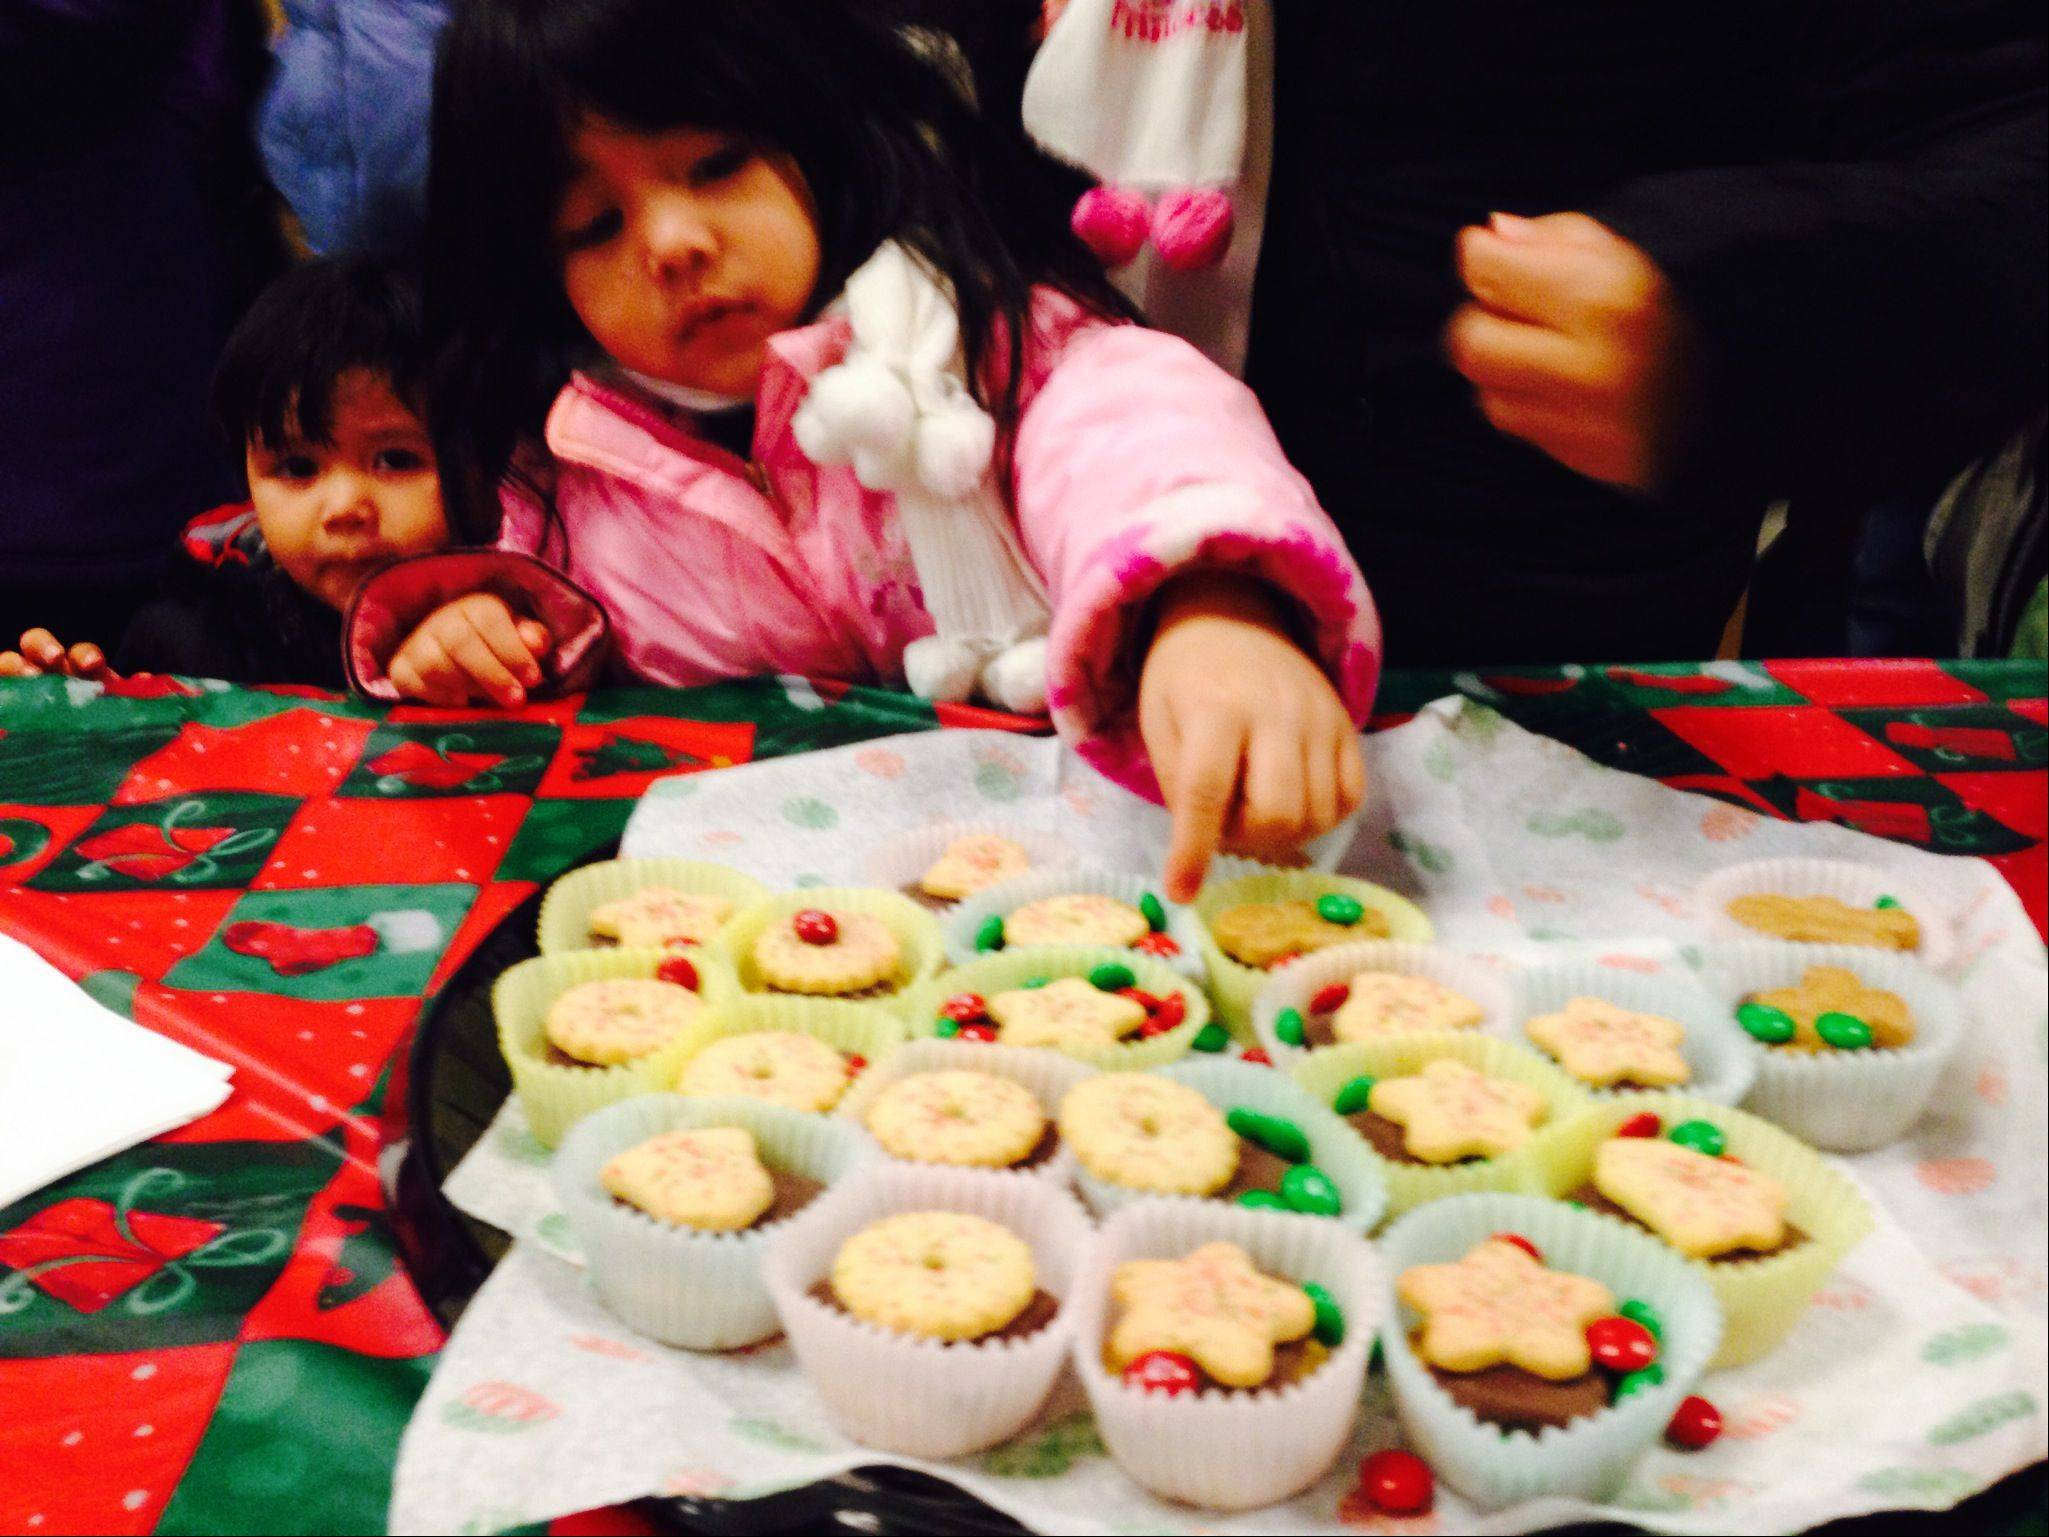 Angeles Zamorano, 4, of Hoffman Estates selects a cookie Saturday at the village's holiday celebration.